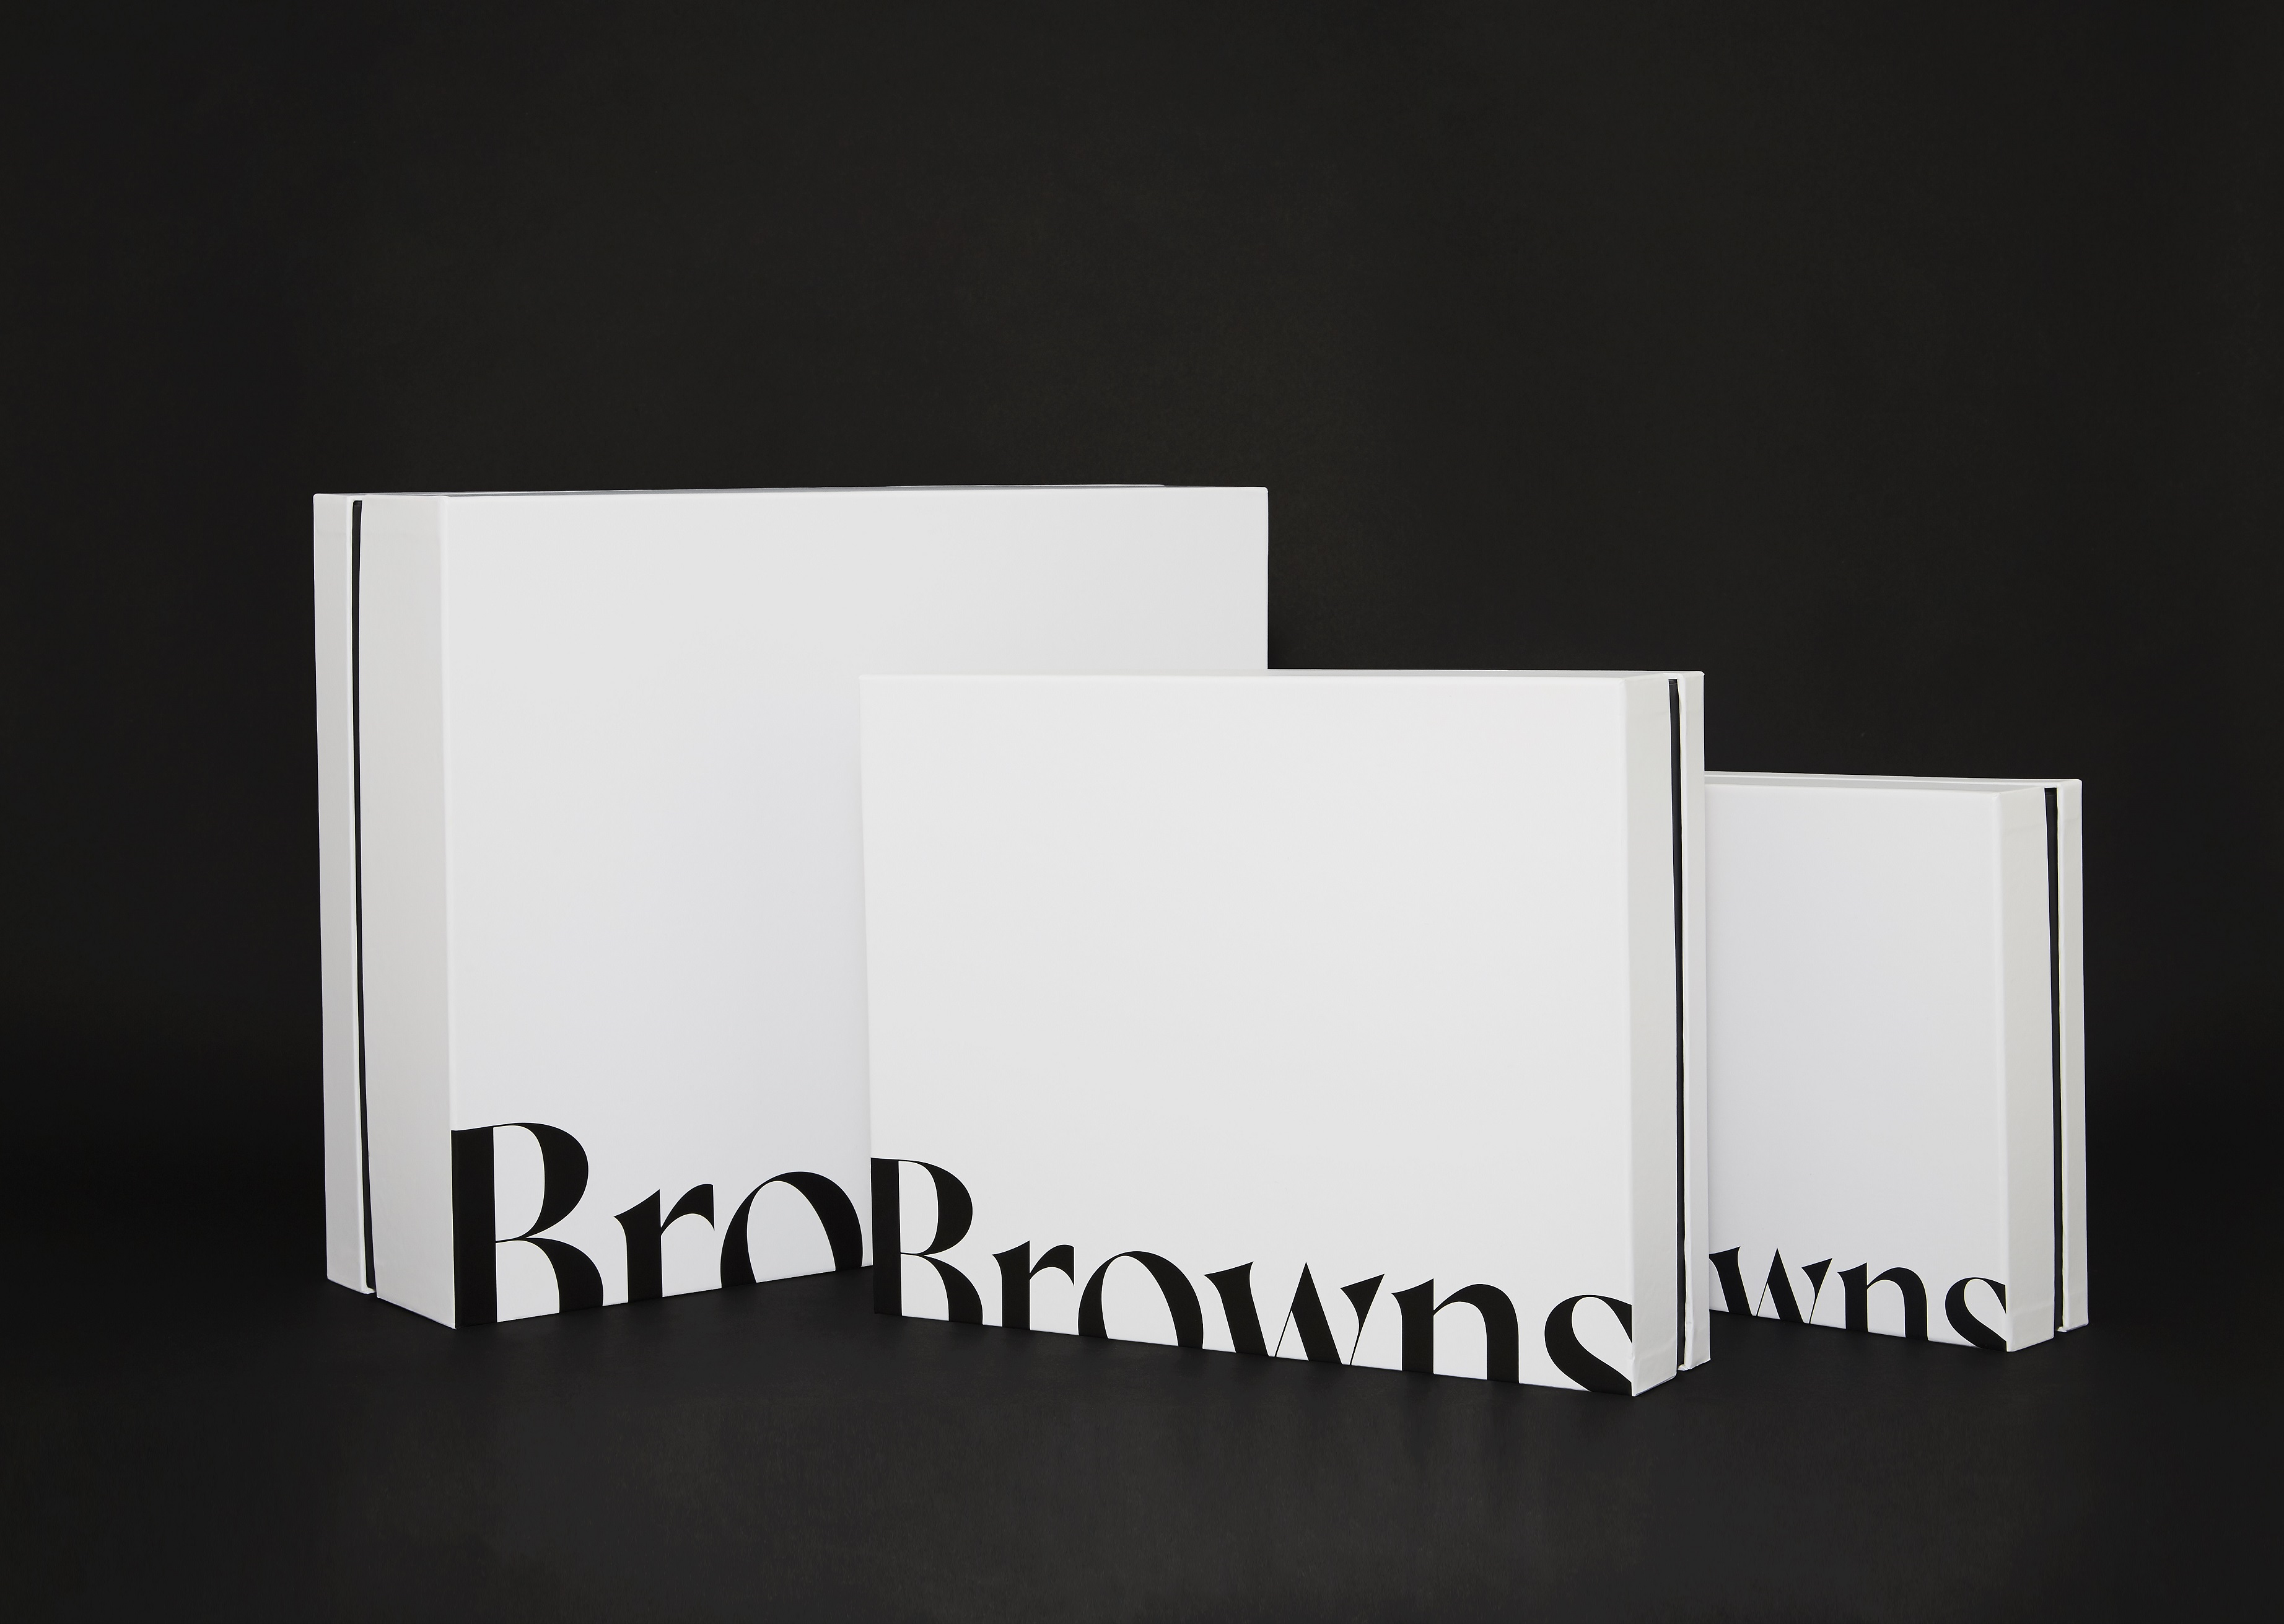 browns_embargo-14-11-10_3-boxes